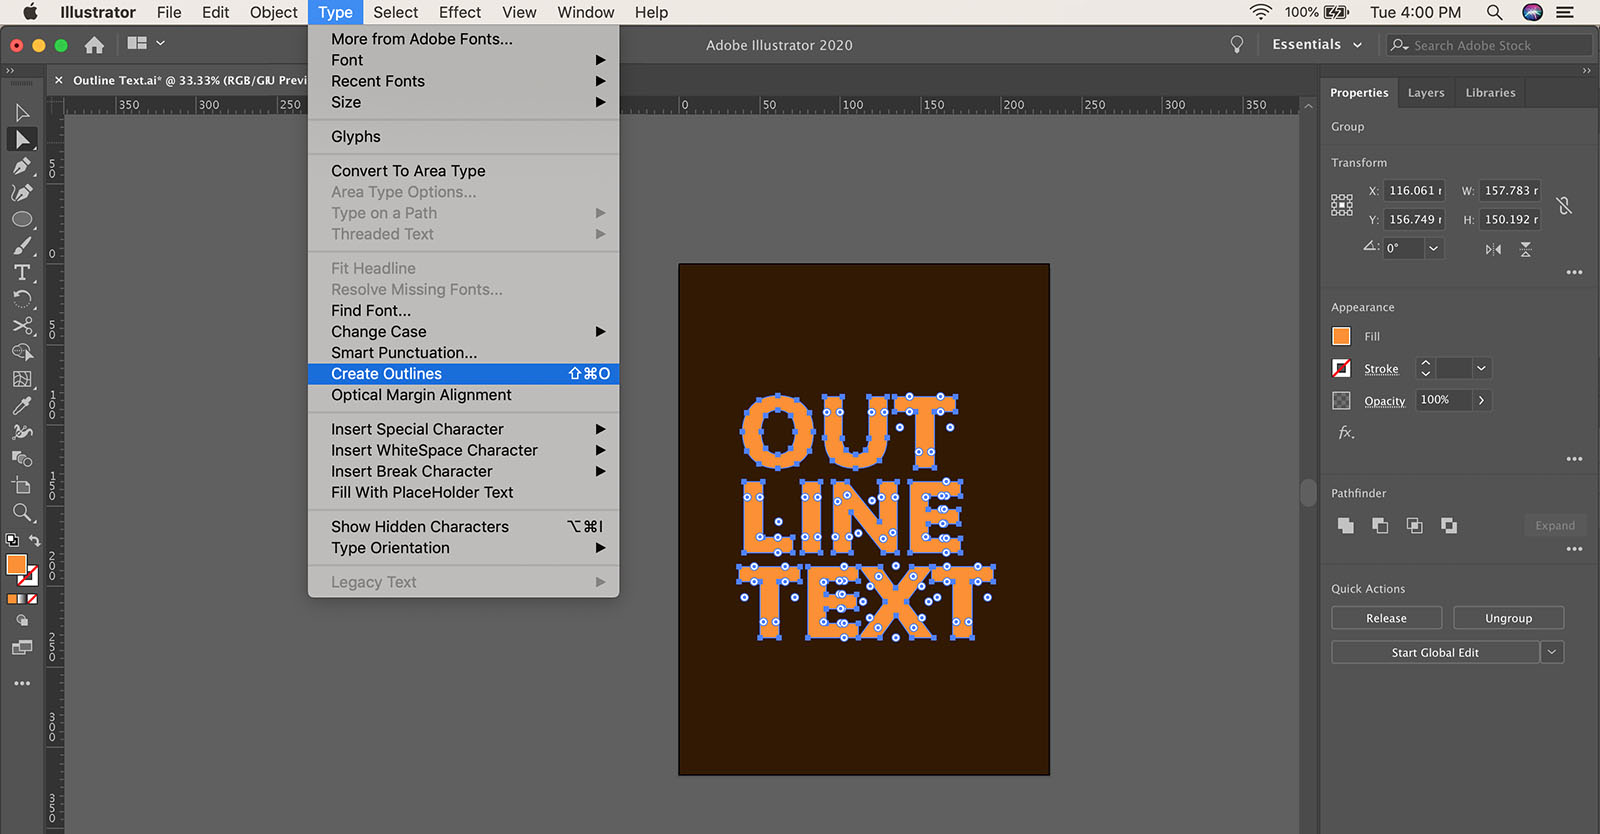 How to convert text to shape in Illustrator